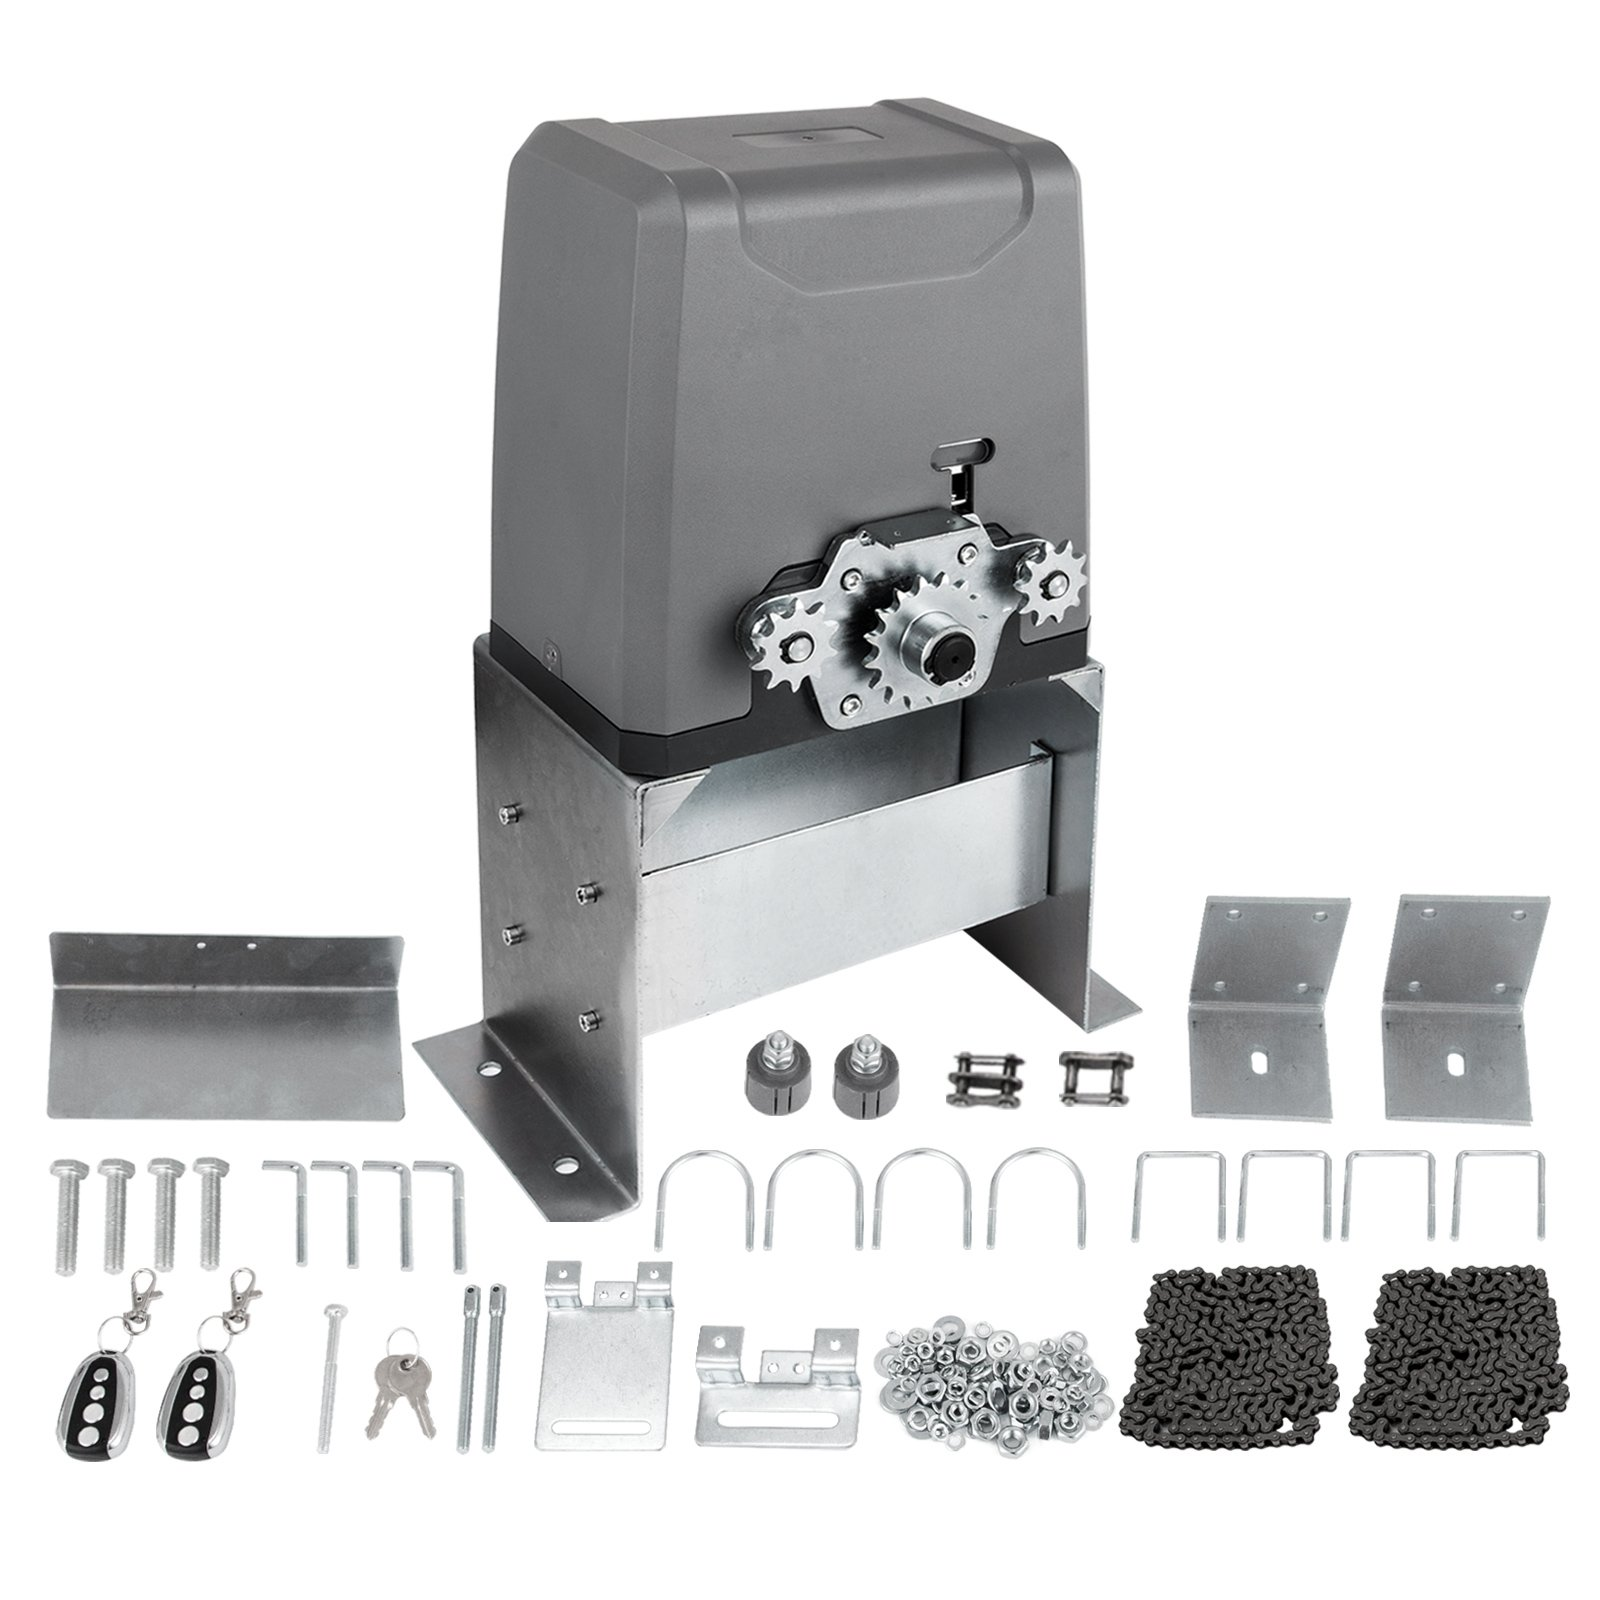 VEVOR Sliding Gate Opener Door Operator Kit Automatic Electric Hardware Up to 3300LBS Gate Opener with Wireless Remotes(SL1500ACL)